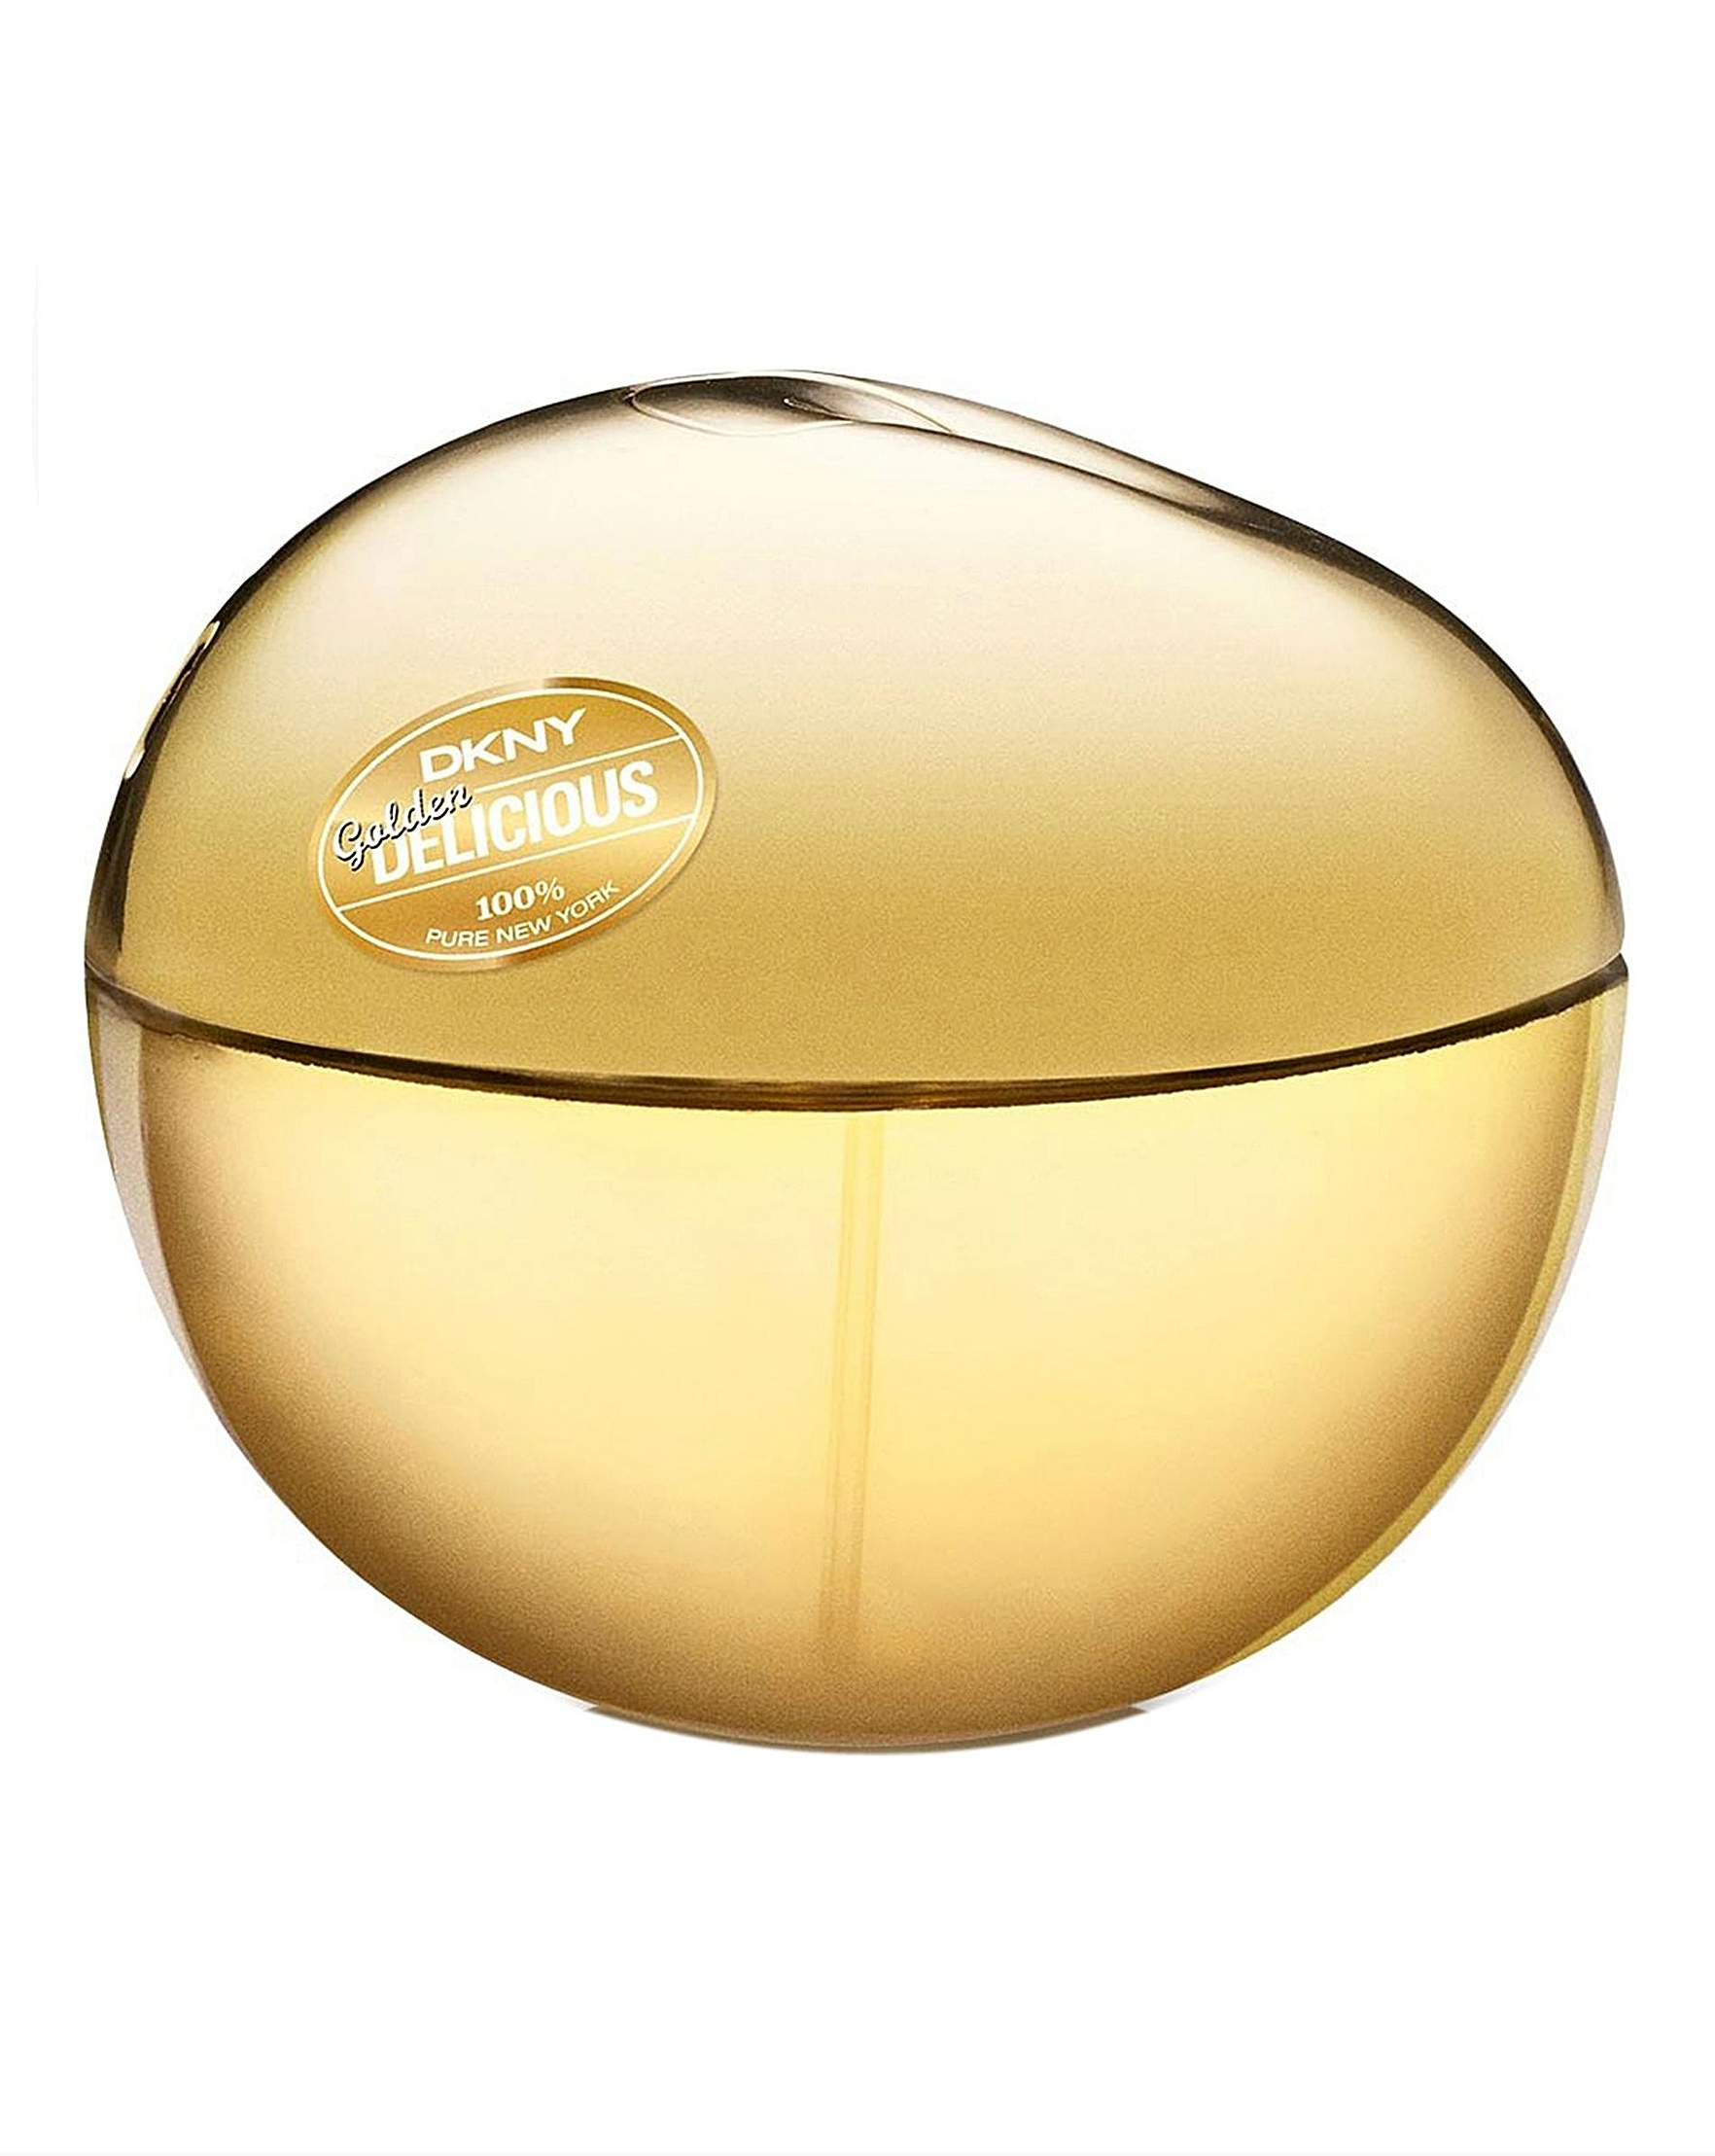 Dkny Golden Delicious 30ml Edp Oxendales